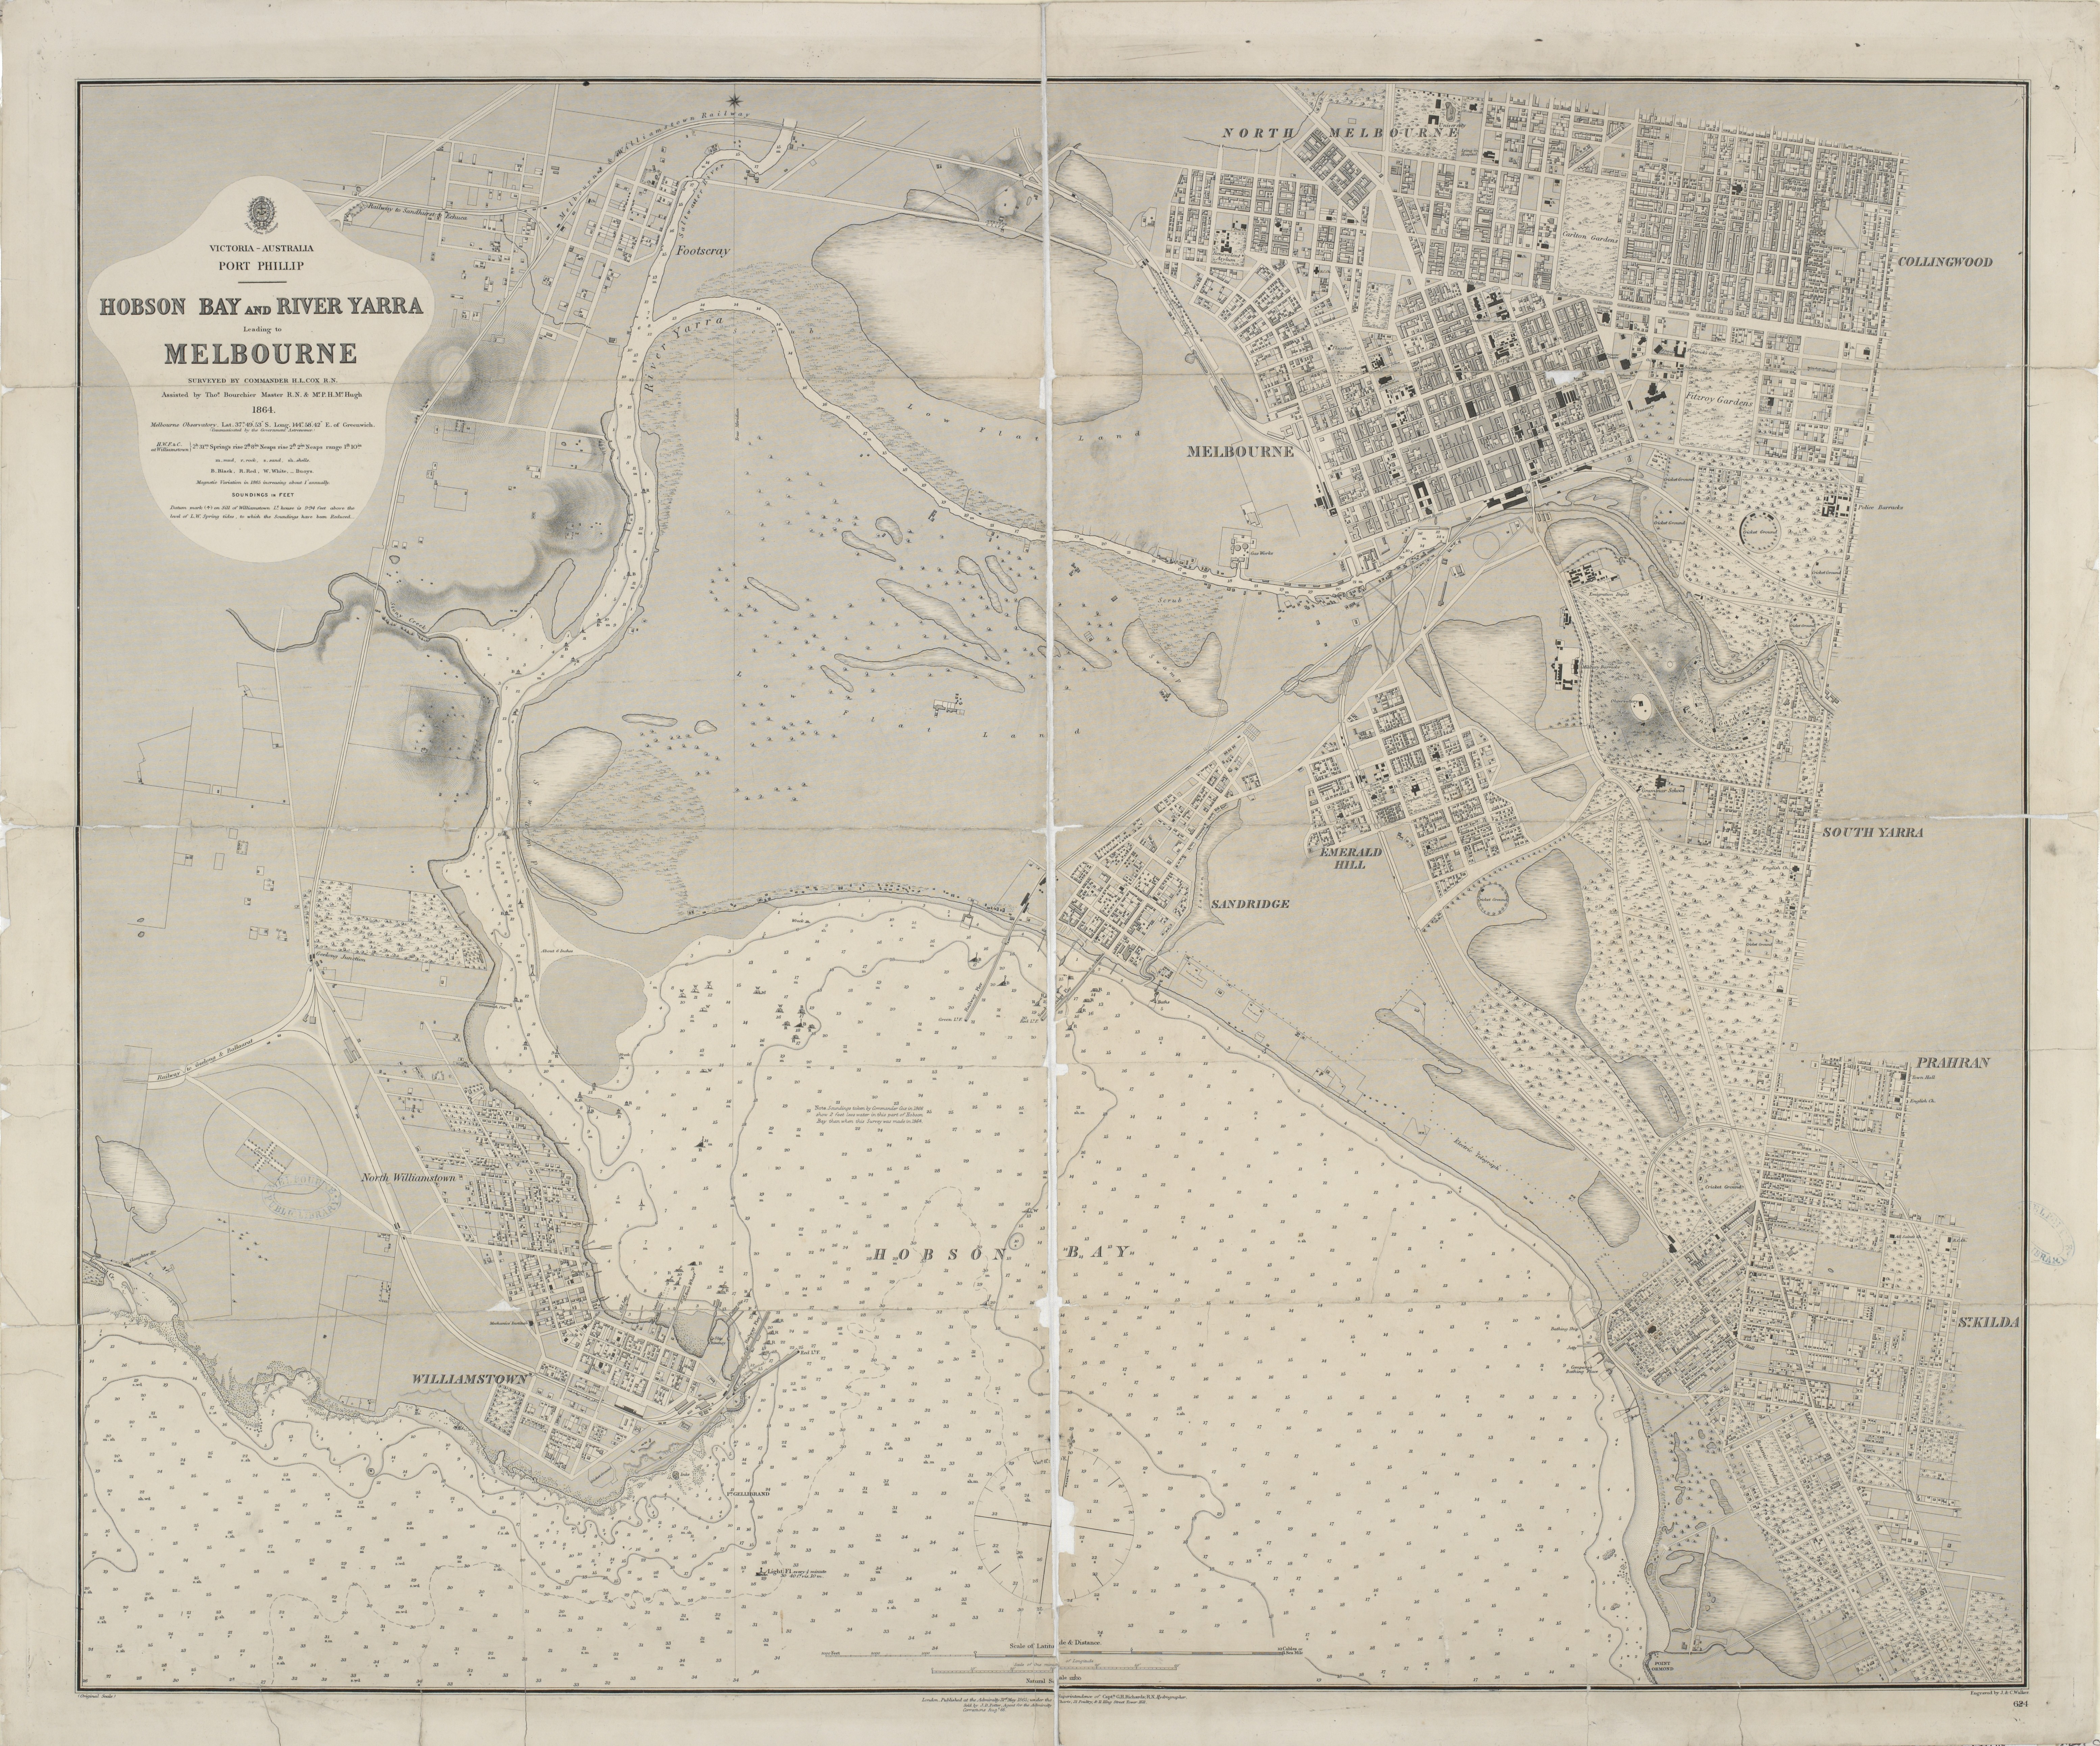 Map of Hobson Bay and Yarra River leading to Melbourne 1864 | East Yarra River Australia Map on niger river australia map, athens metro map, narmada river map, trail map, snowy river australia map, derwent river australia map,